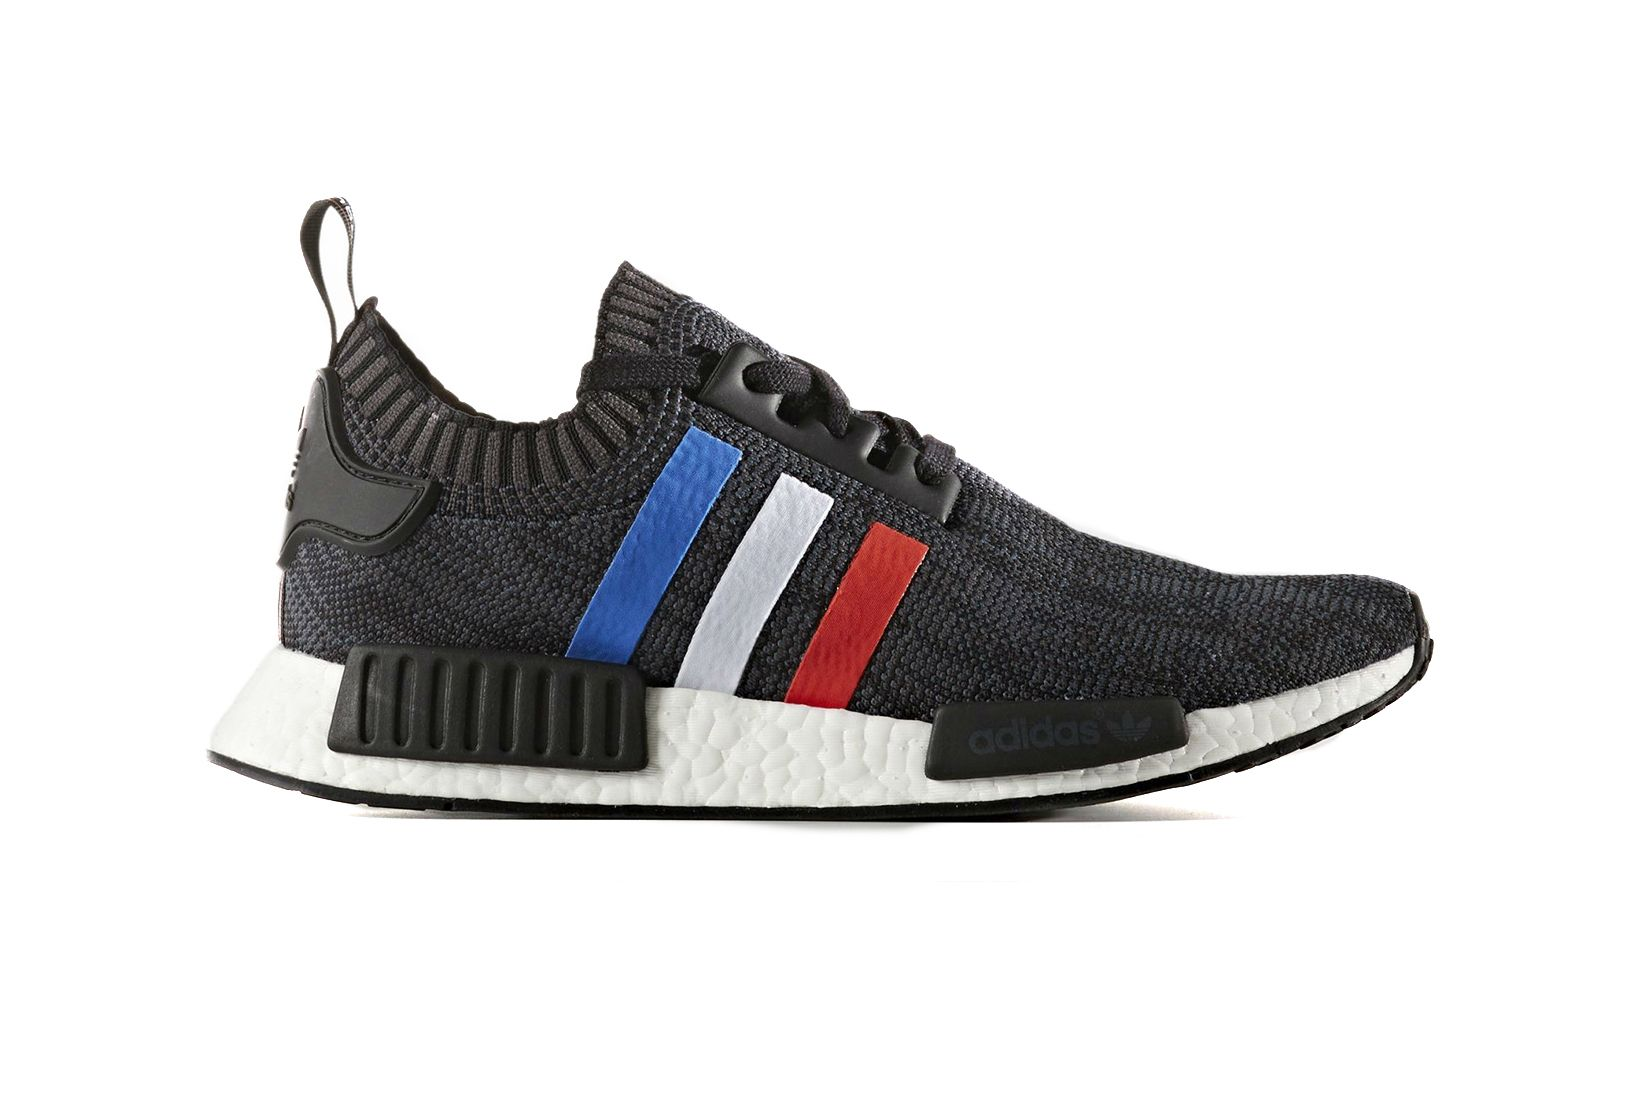 size 40 a3c0a ba11d adidas NMD R1 Bred Pack Release Details  SneakerNews.com